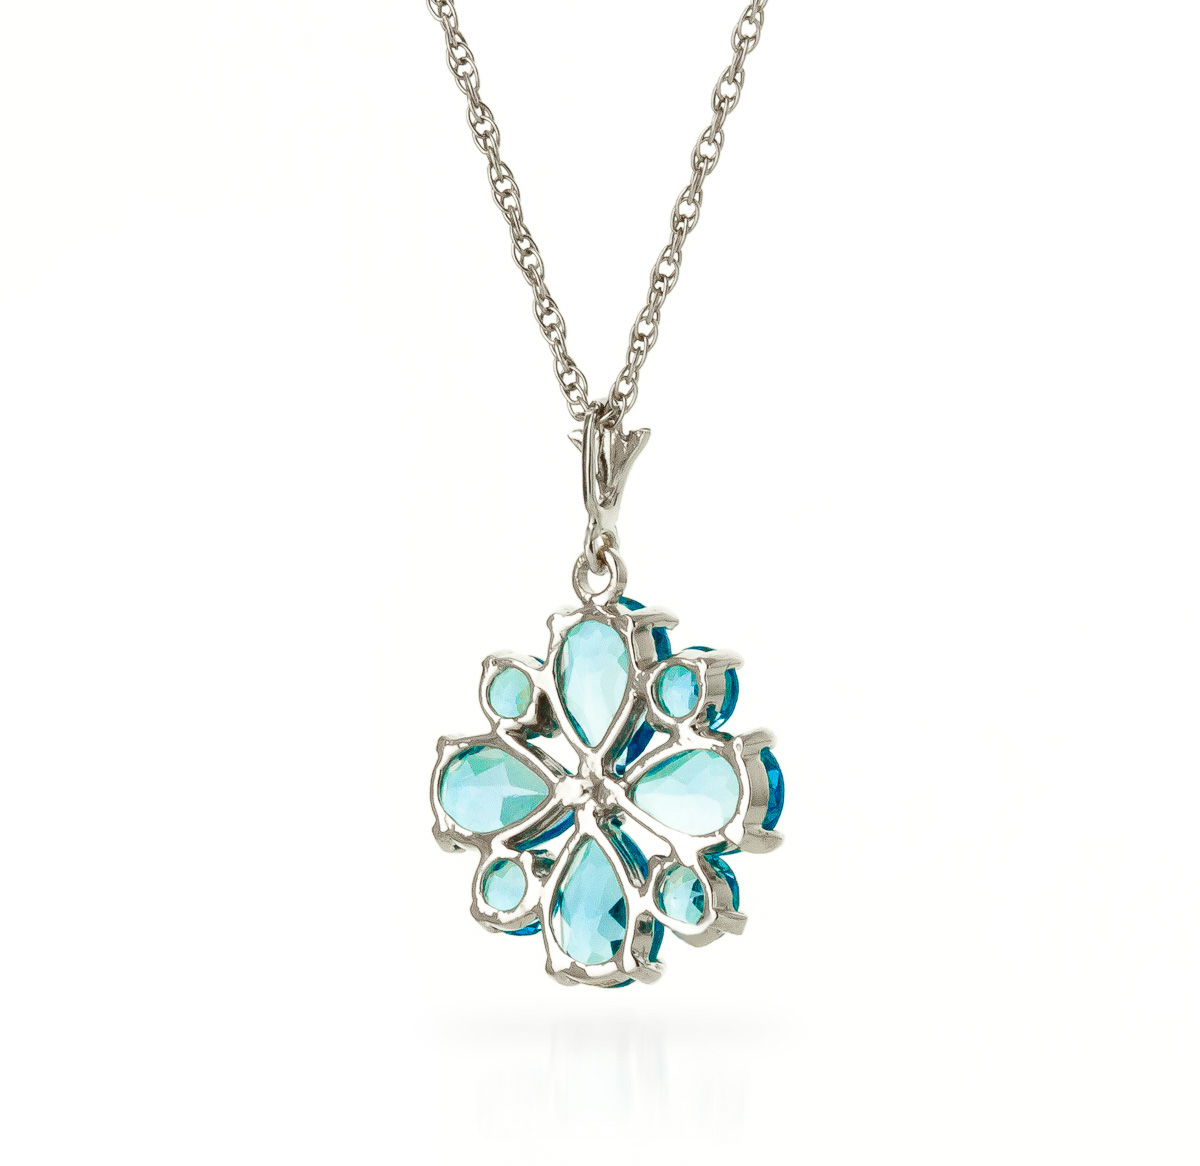 Blue Topaz Sunflower Pendant Necklace 2.43ctw in 9ct White Gold